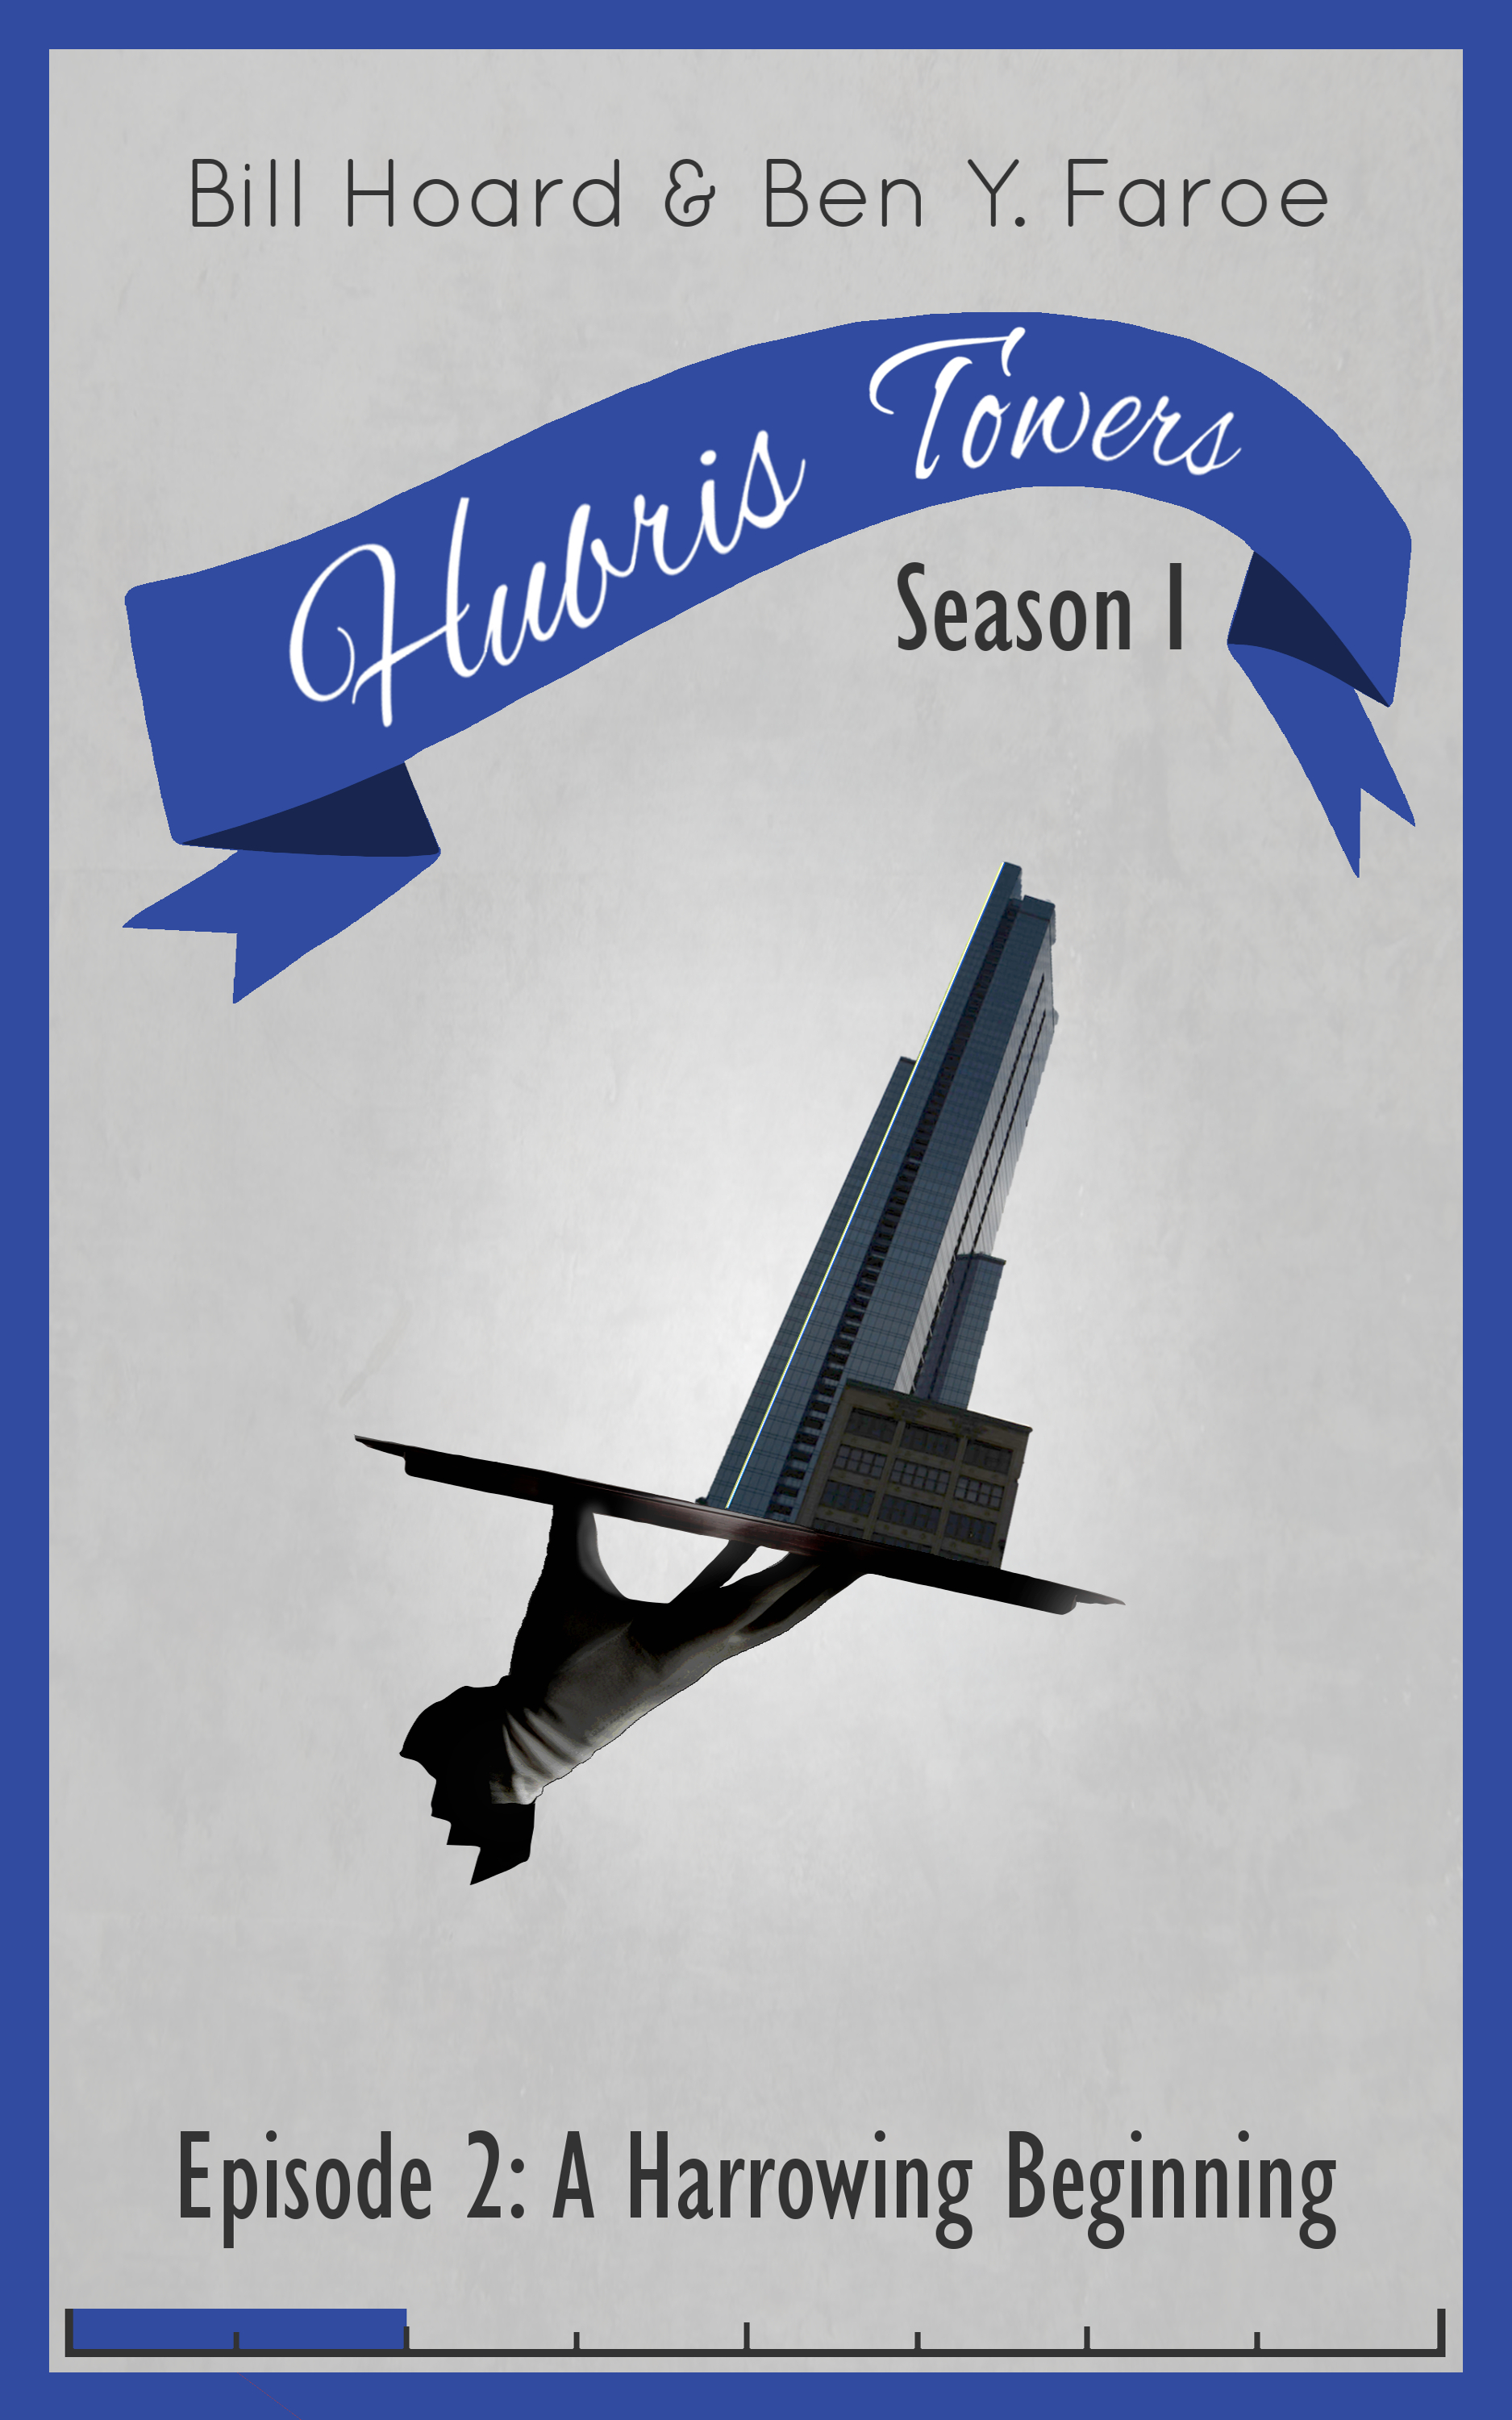 Hubris Towers S01E02 Cover 1.1